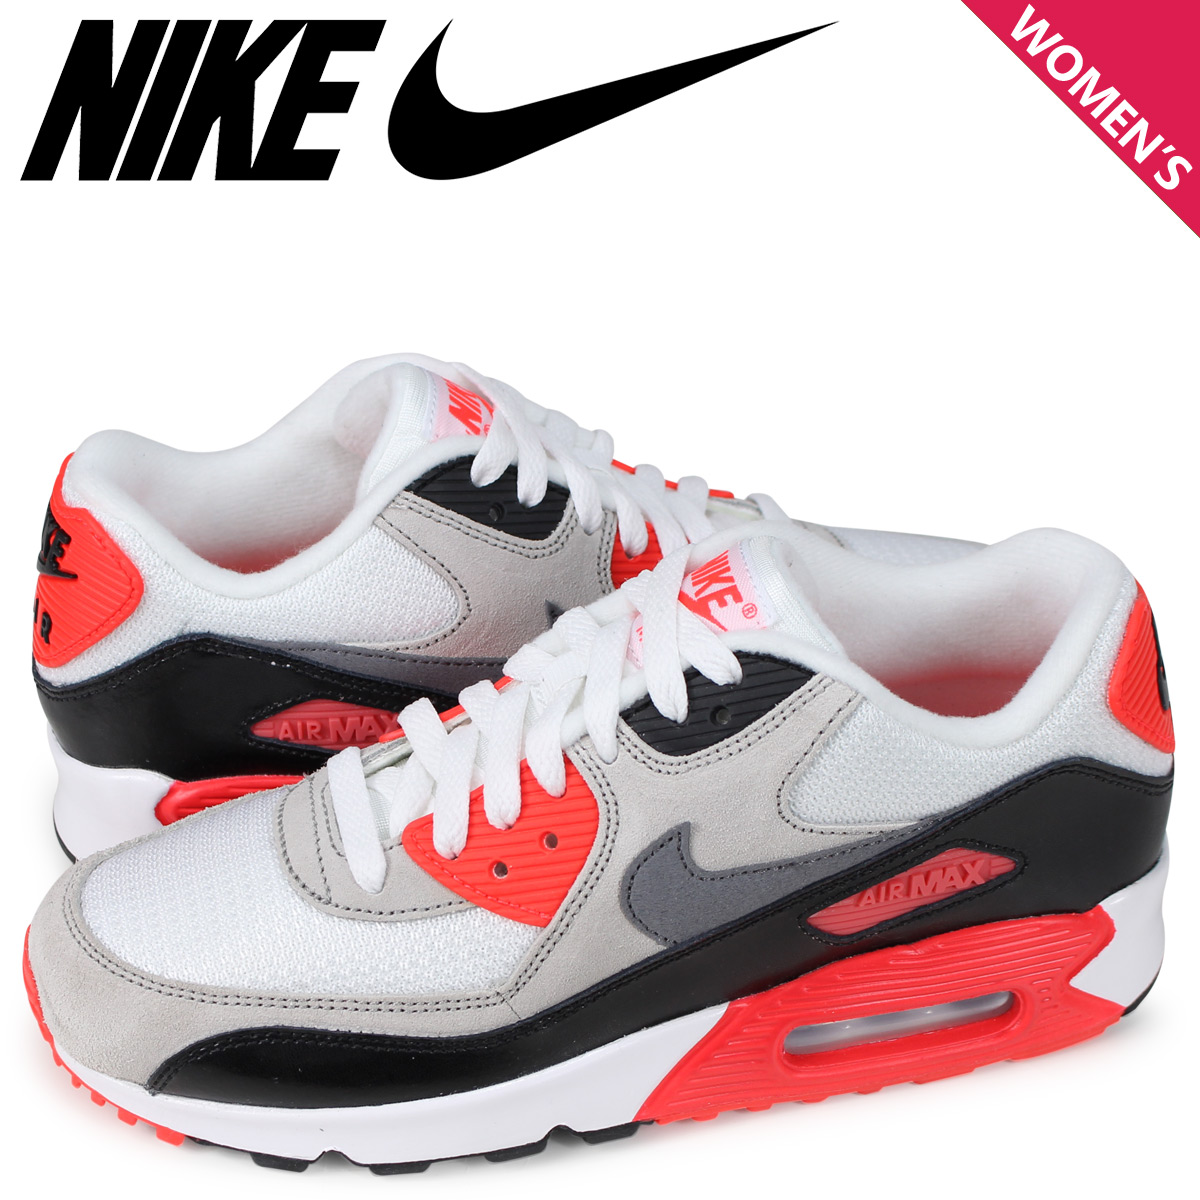 official photos e9101 57890 NIKE AIR MAX 90 PREMIUM MESH GS Kie Ney AMAX 90 Lady s sneakers white  724,882- ...